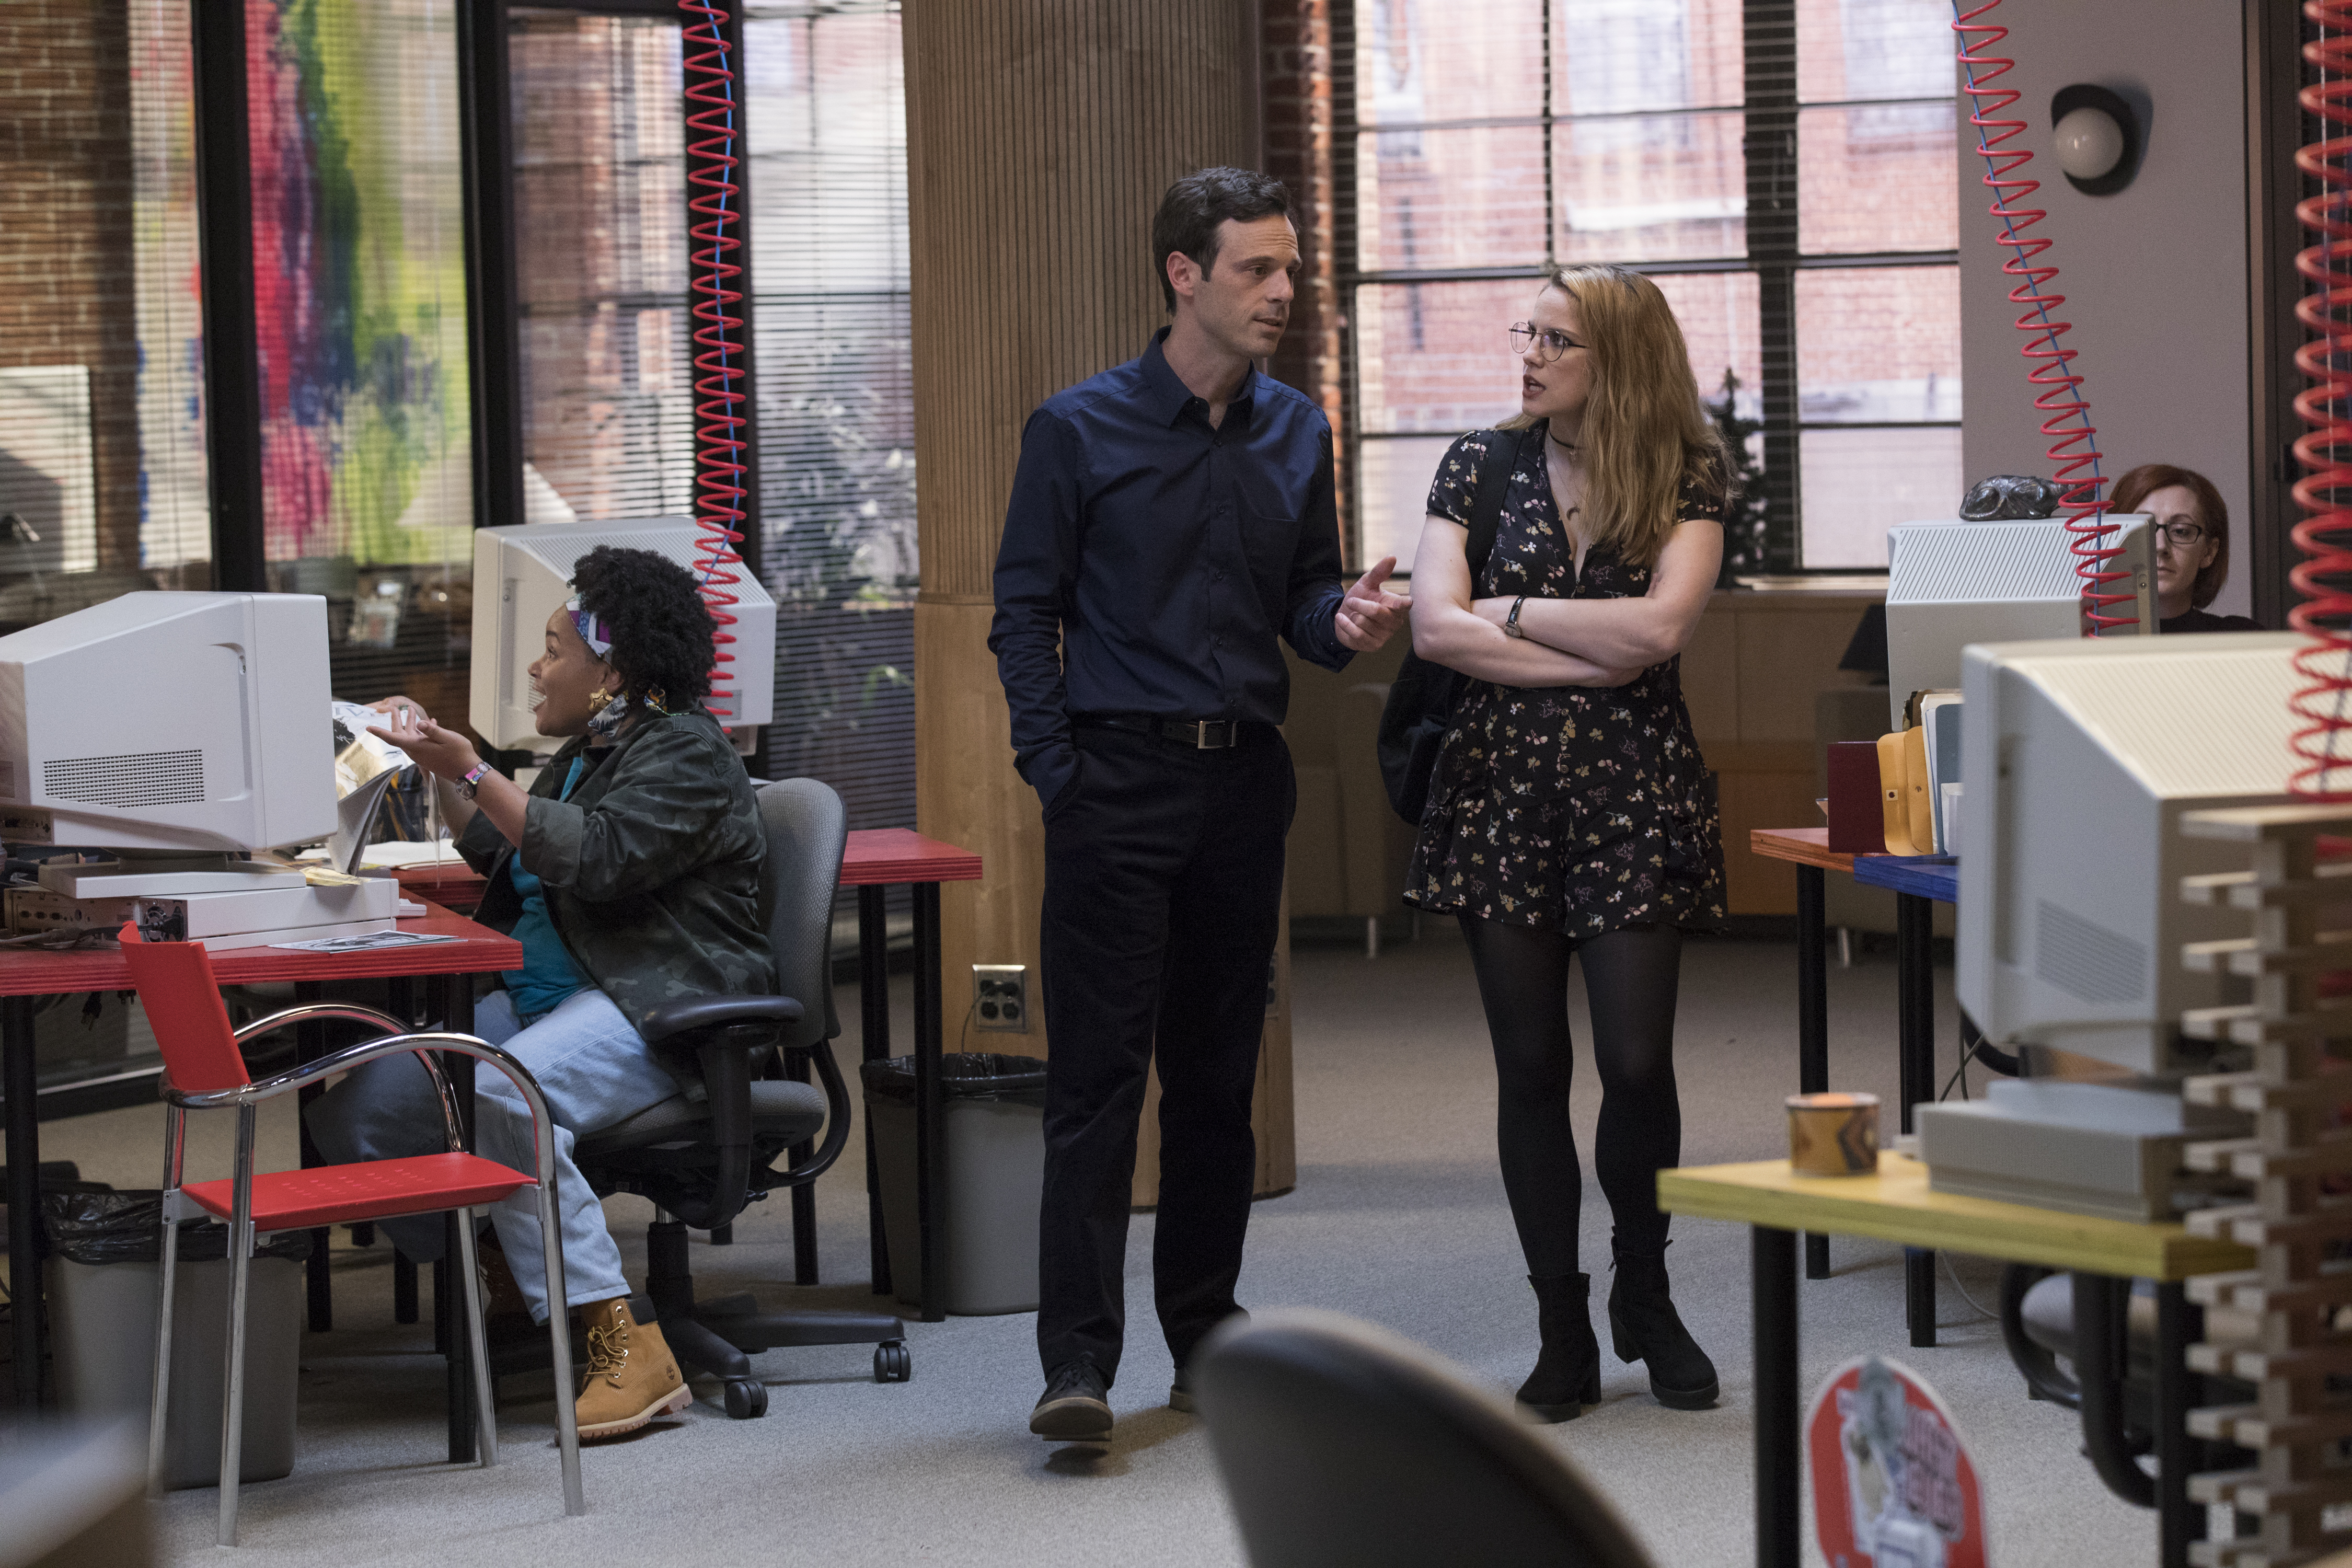 Halt and Catch Fire: the Fourth and Final Season Debuts on AMC in August (Teaser & Photos) - canceled TV shows - TV Series Finale